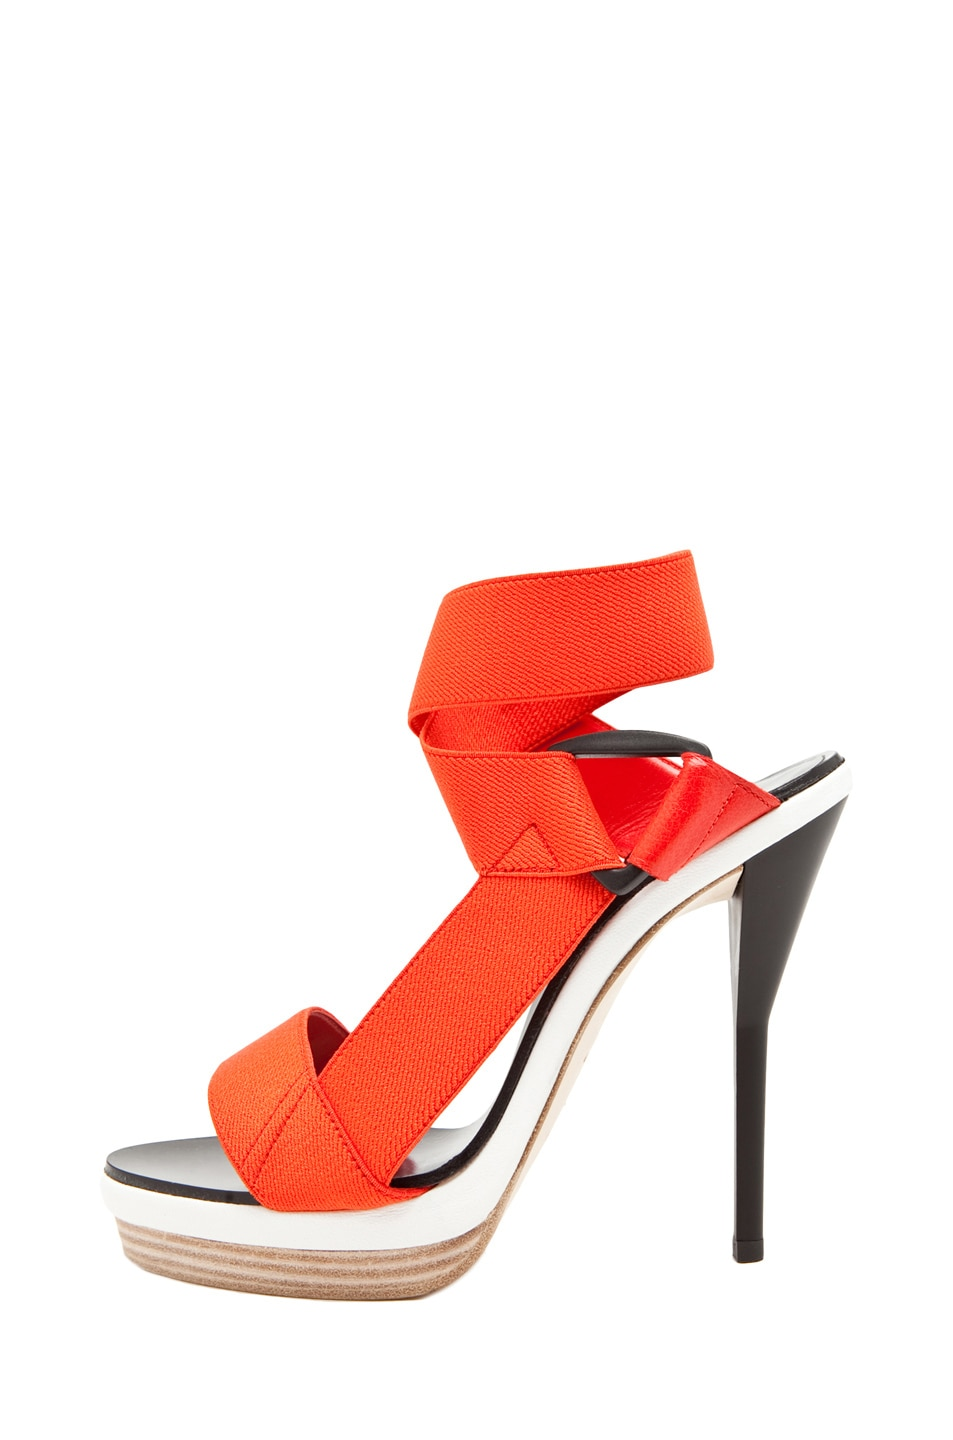 Image 1 of 3.1 phillip lim Kiara in Vermillion